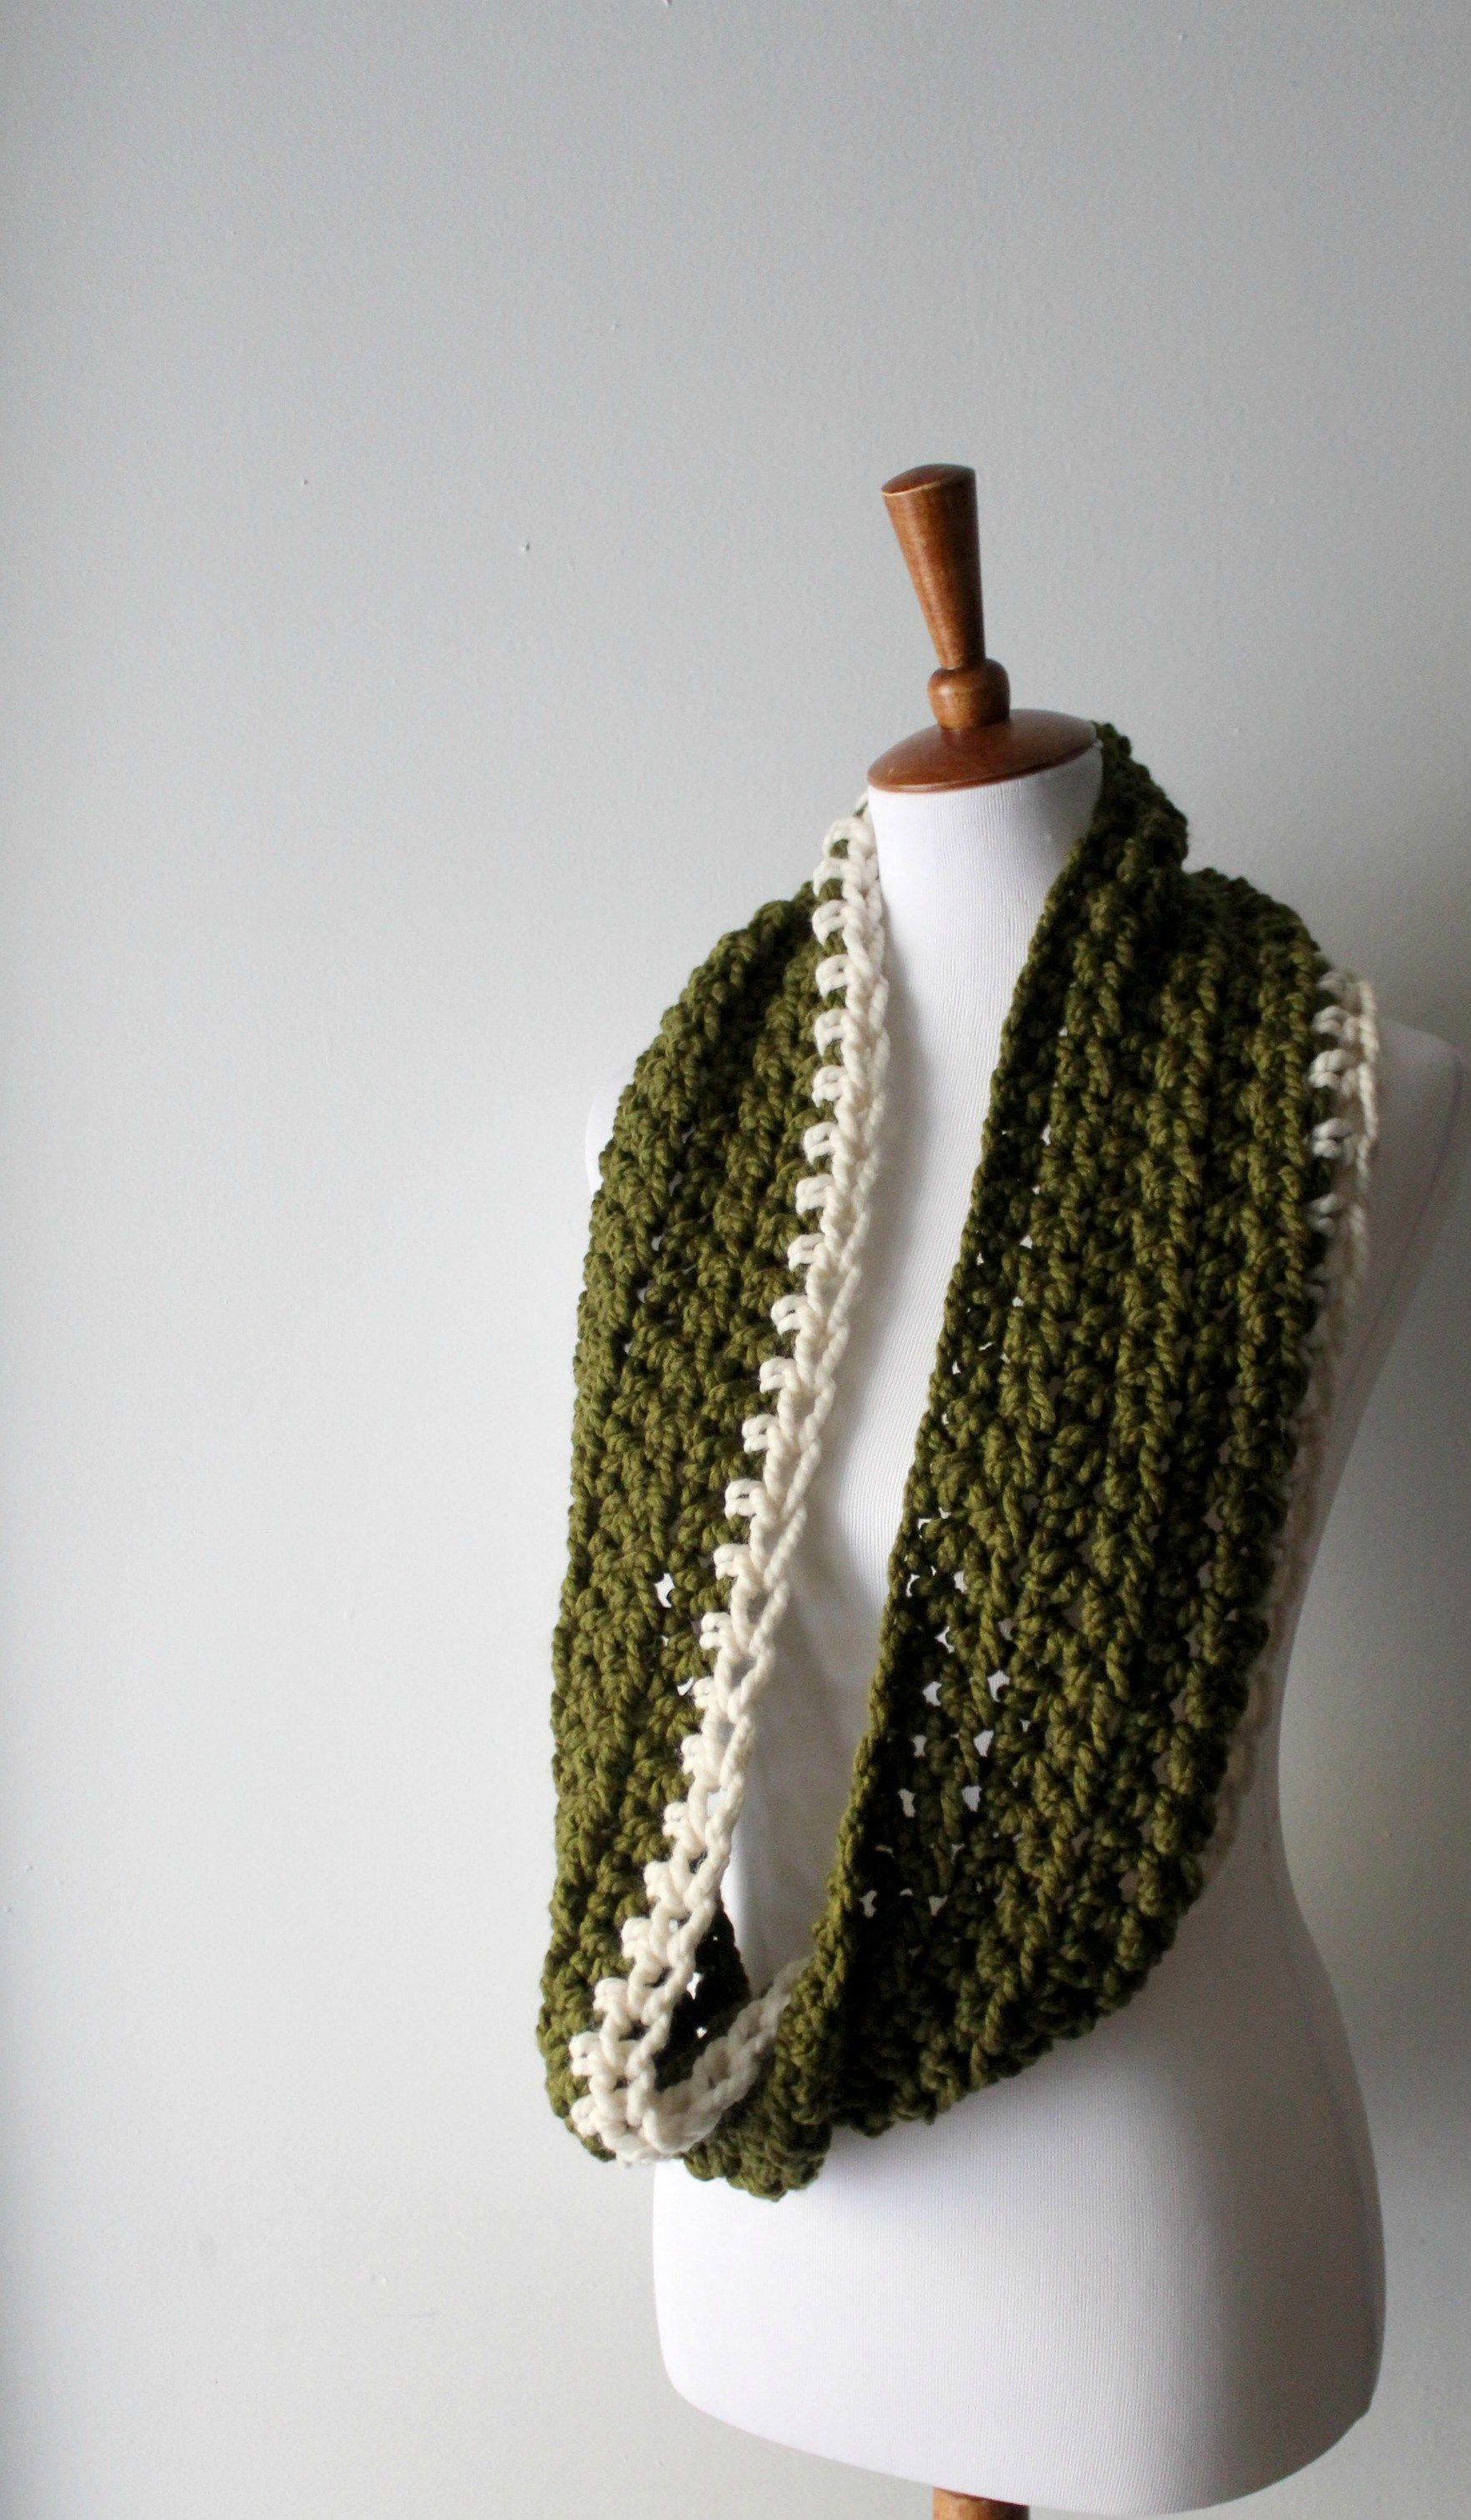 The Easiest Beginner Crochet Scarf for Your Next Project!